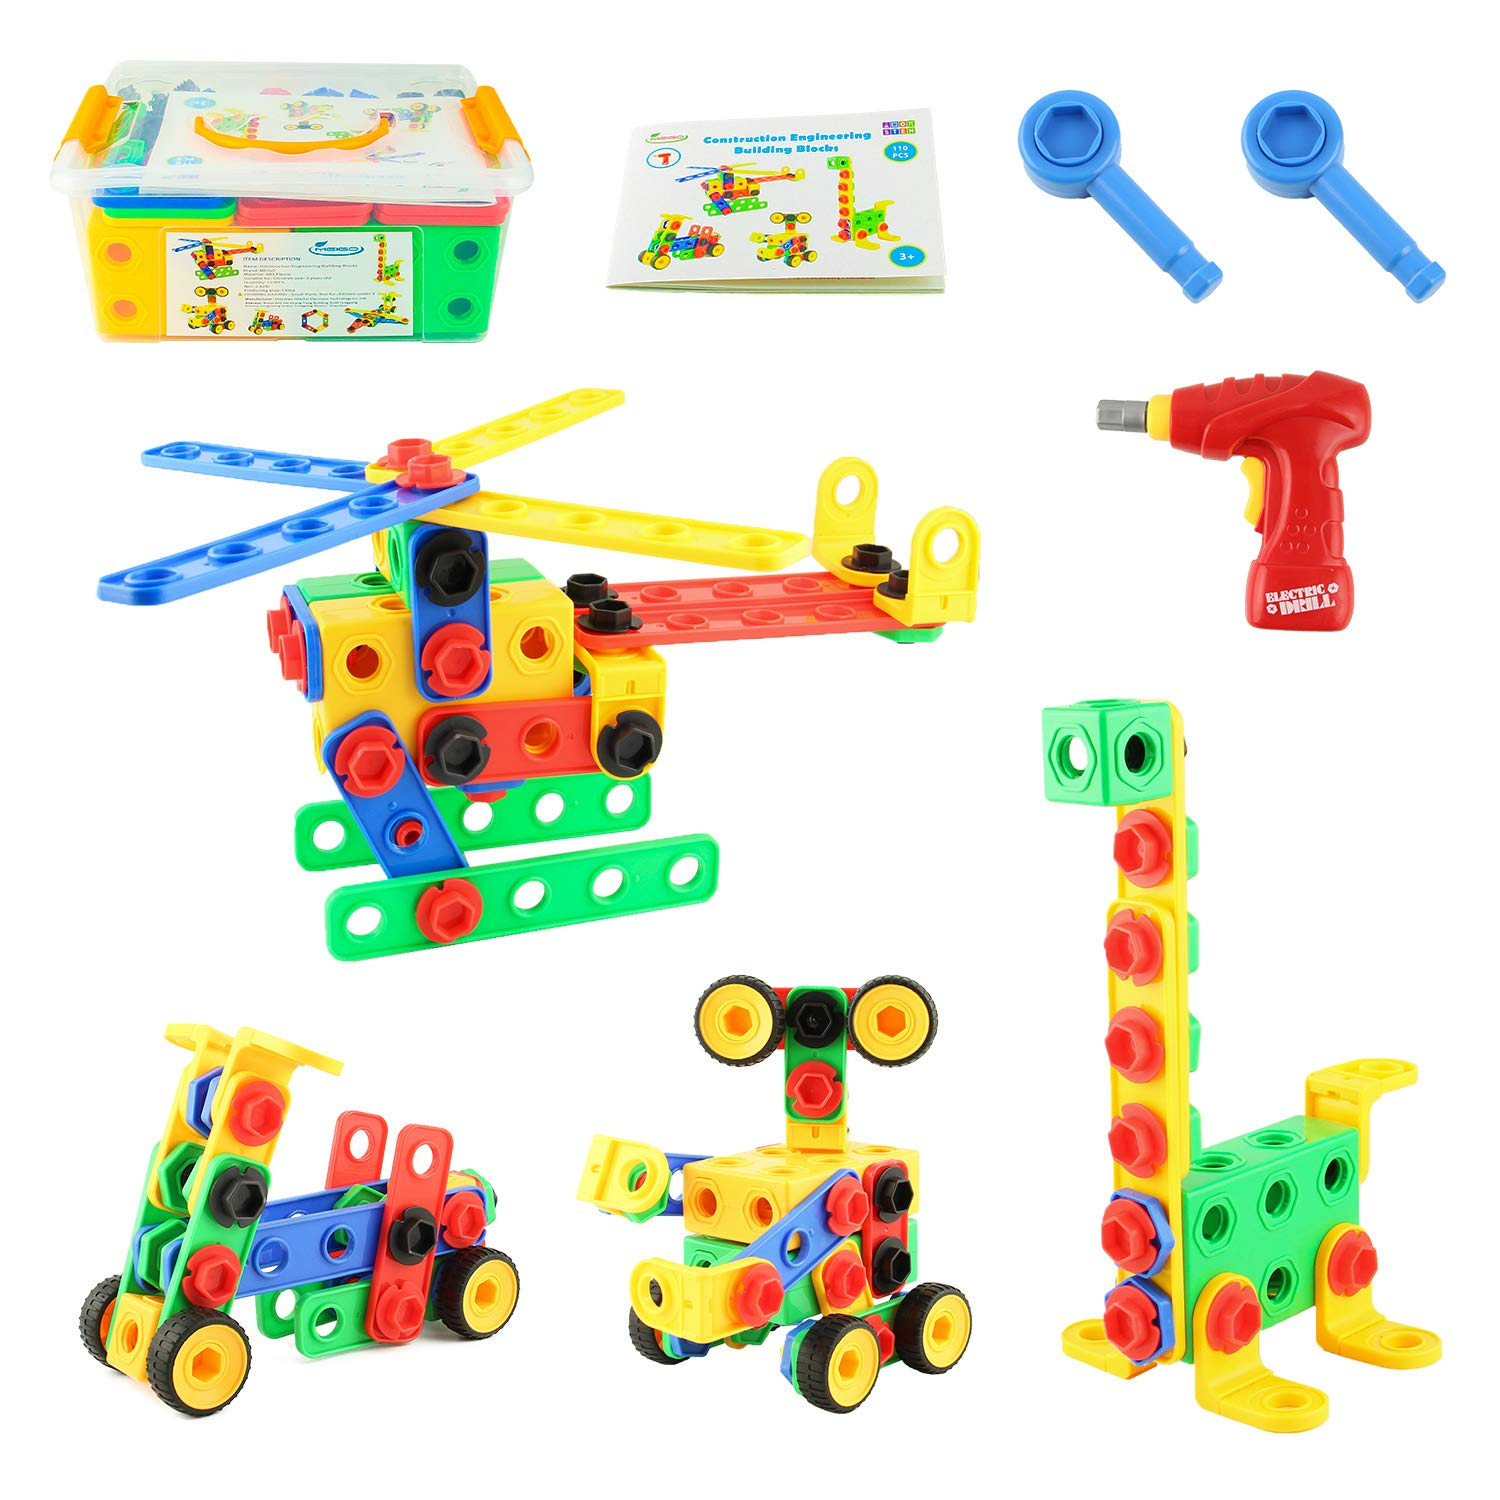 MEIGO STEM Toys - Toddlers Educational Construction Engineering Building Blocks Set Best Learning Toy Gift Kit for Kids 3 4 5 6 7 8 9 10 Year Old Boys Girls (110pcs)